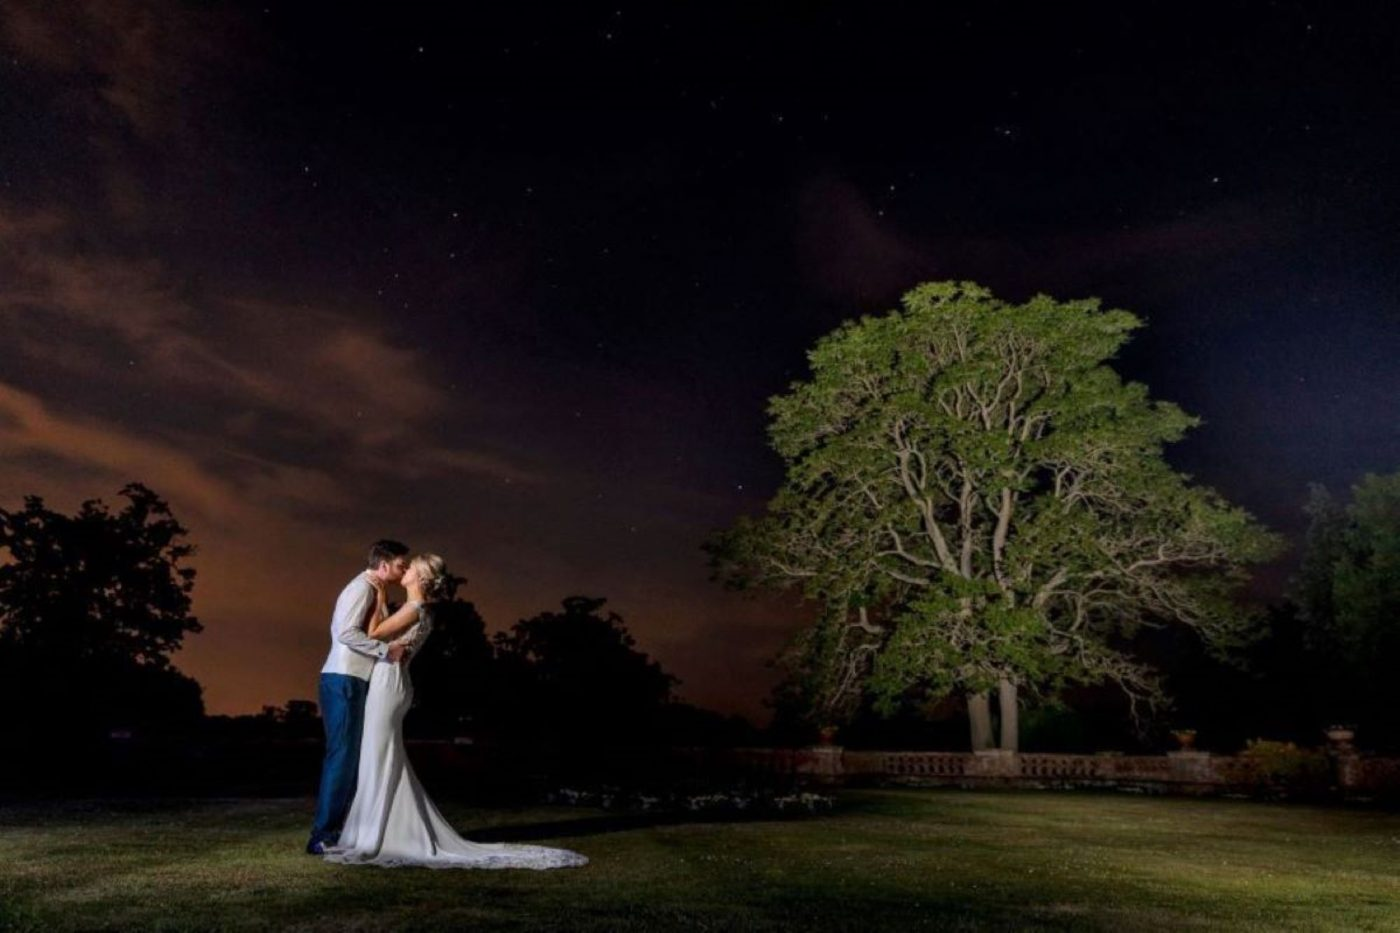 Wedding Photography by S.R.Urwin Wedding Photography